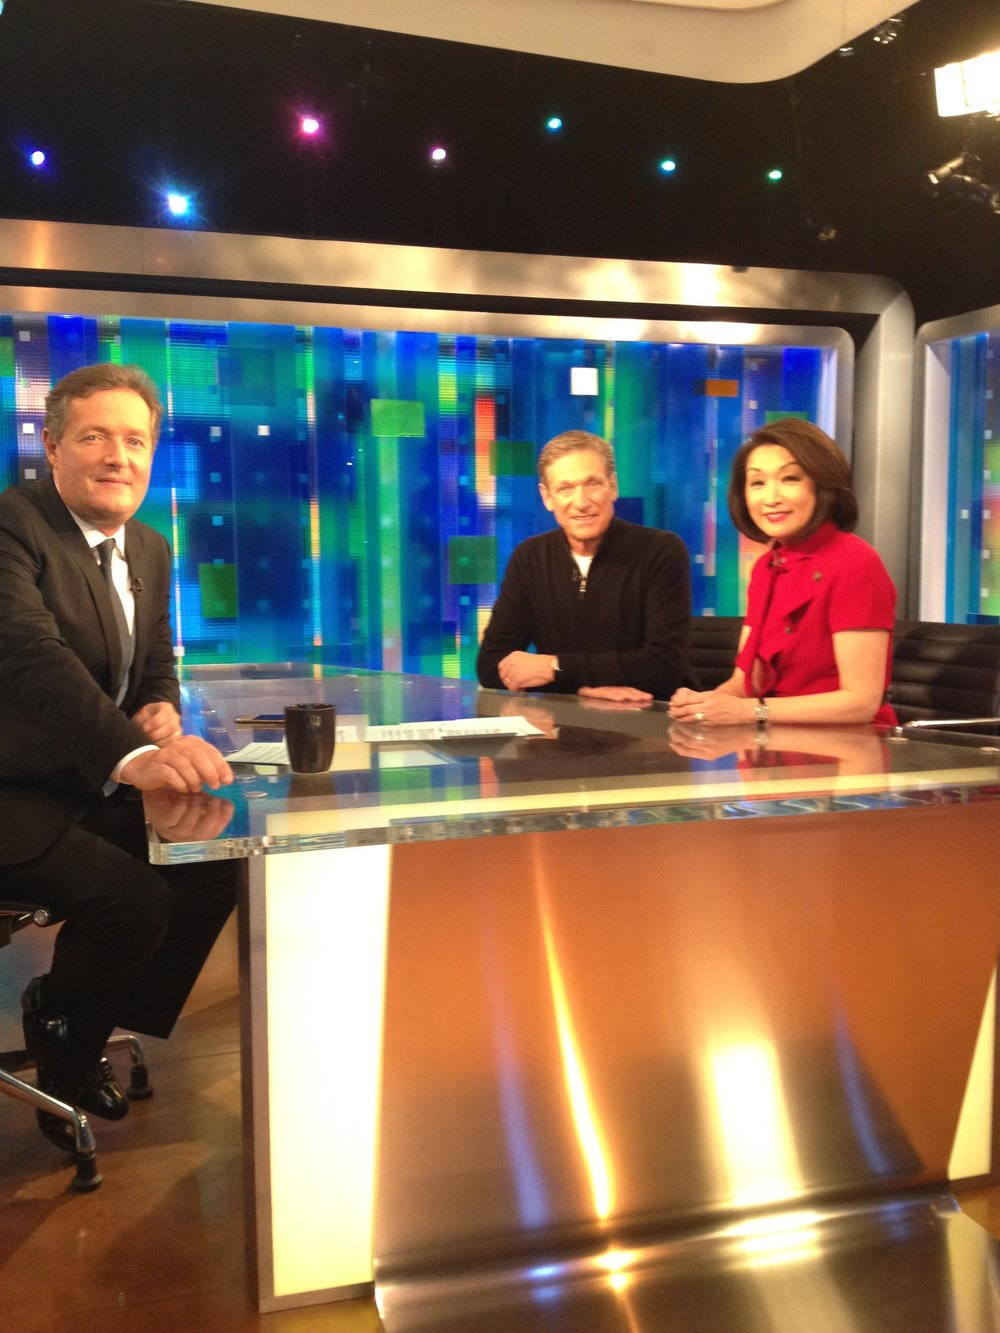 Maury Povich and Connie Chung with Piers Morgan